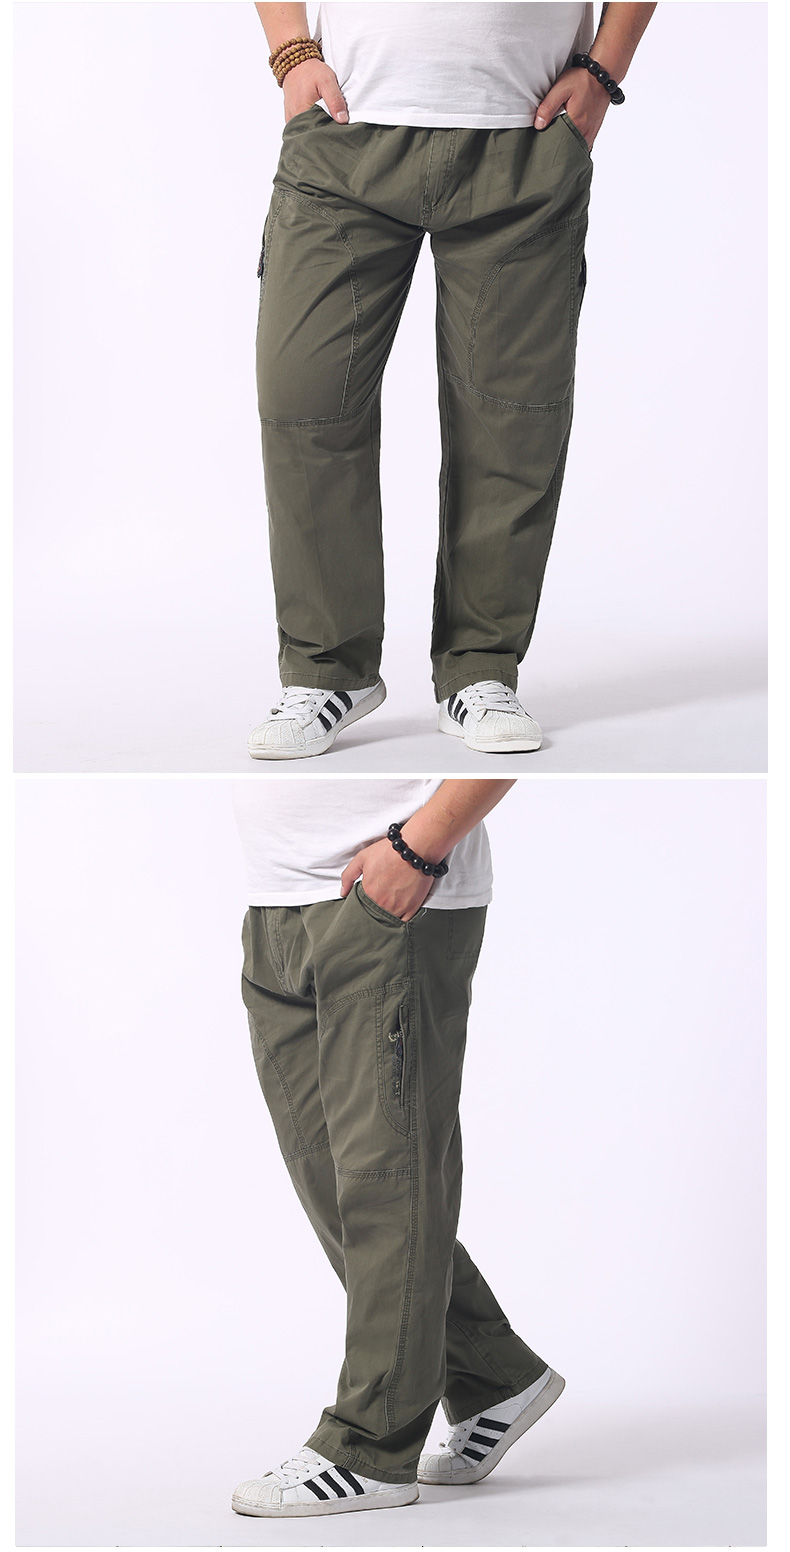 Man Loose Fitting Cargo Pants Yellow Black Gray Khaki  Overall For Mens Cotton Comfort Trousers Elastic Waist Pant American Apparel (8)